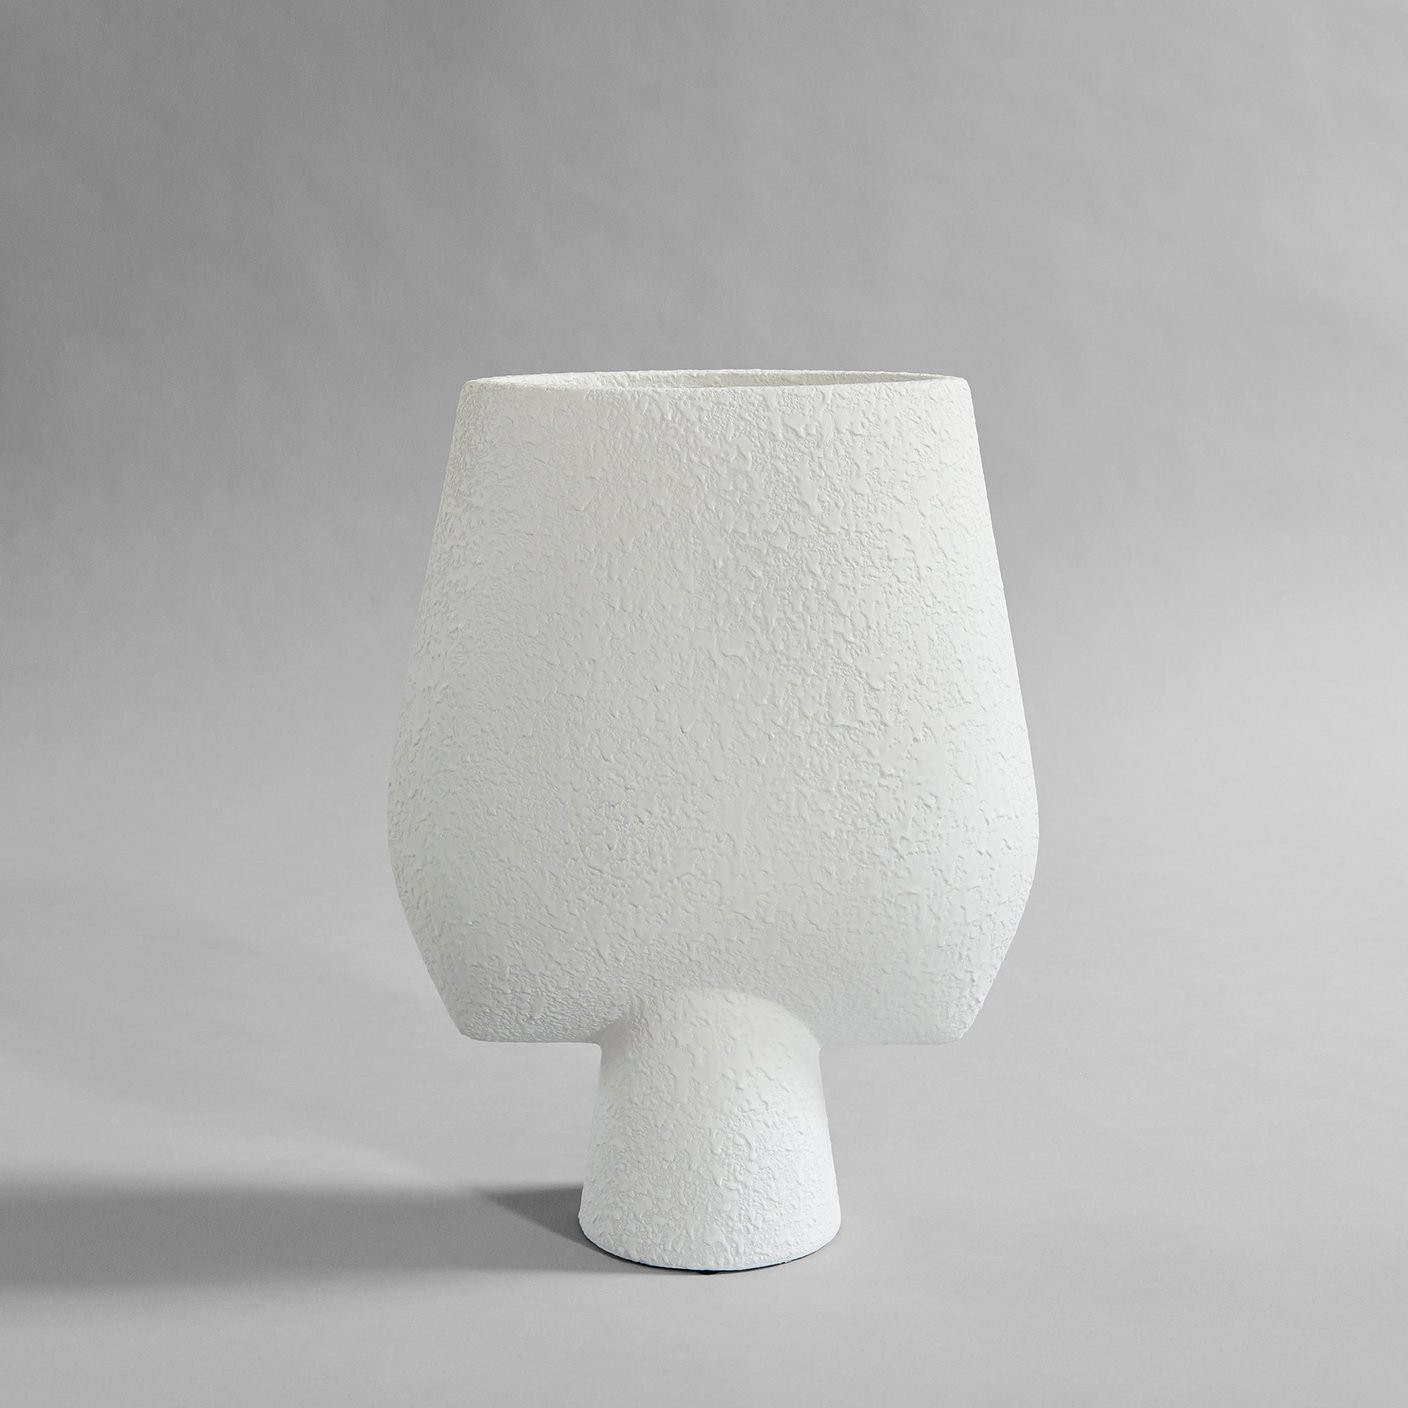 Sphere Vase Square, Big - Bubble White